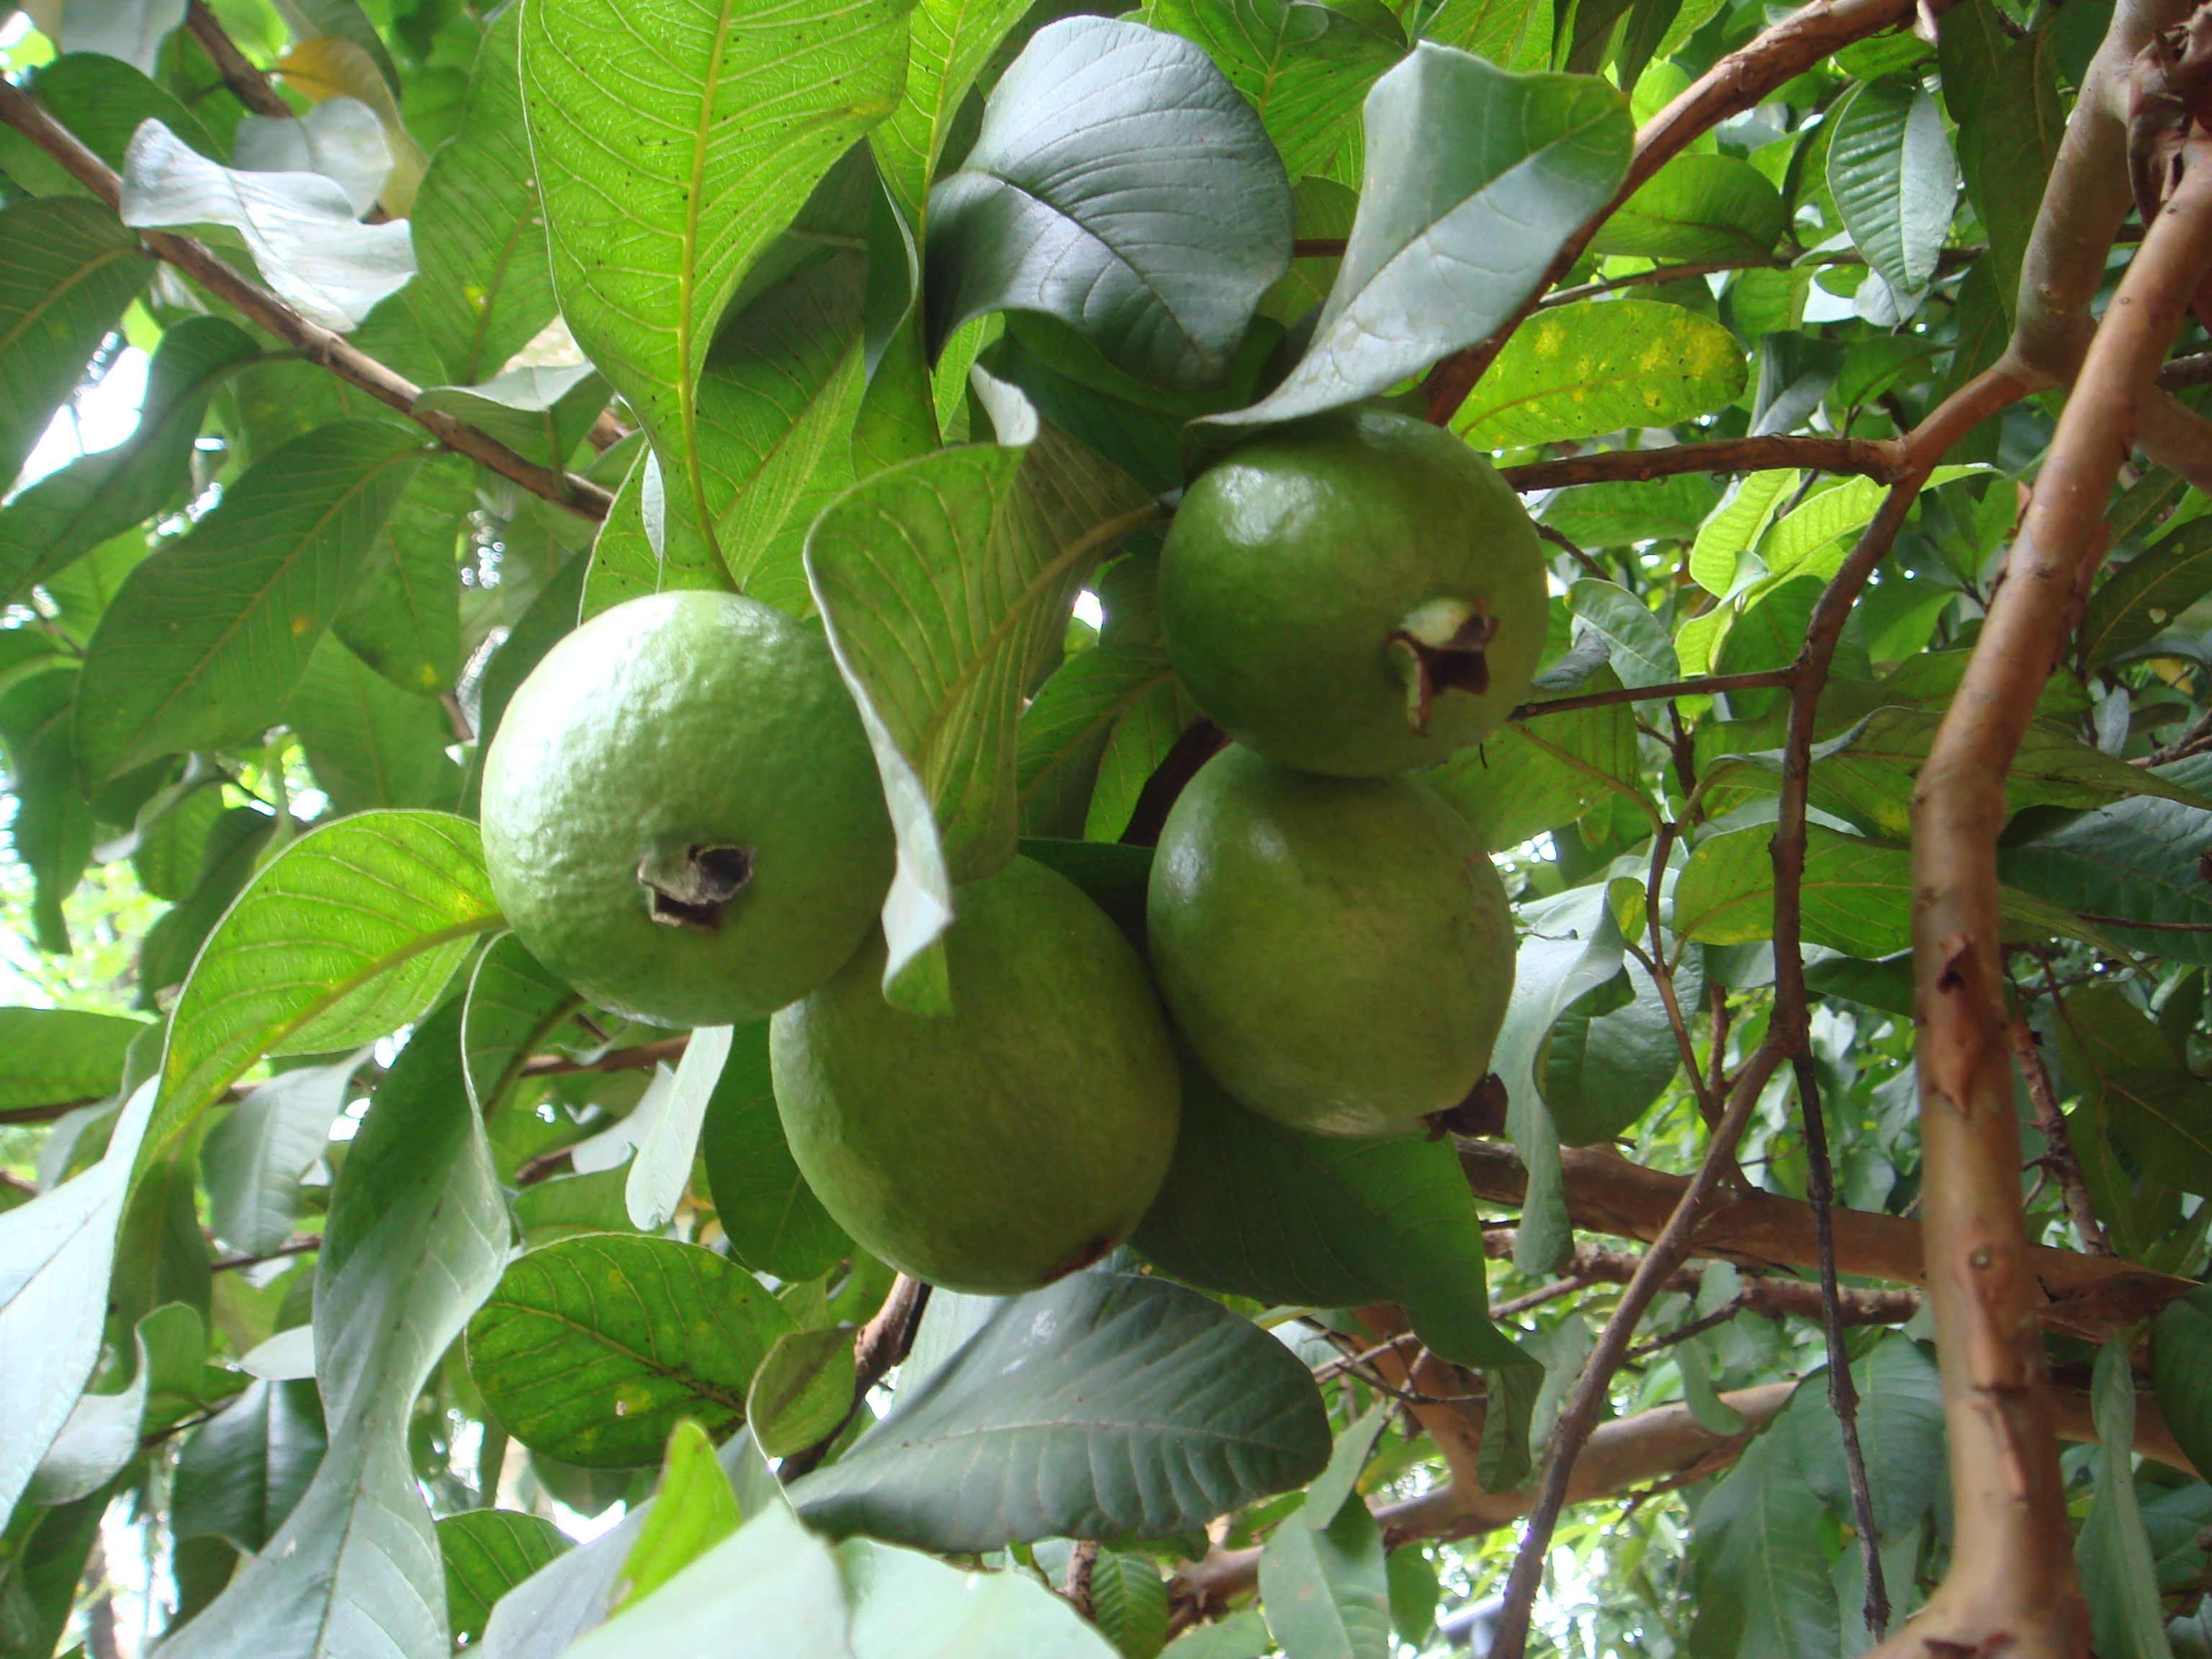 30 best grow assess guava images on pinterest guava tree guavas are common tropical fruits cultivated and enjoyed in many tropical and subtropical regions psidium guajava is a small tree in the myrtle family ccuart Image collections